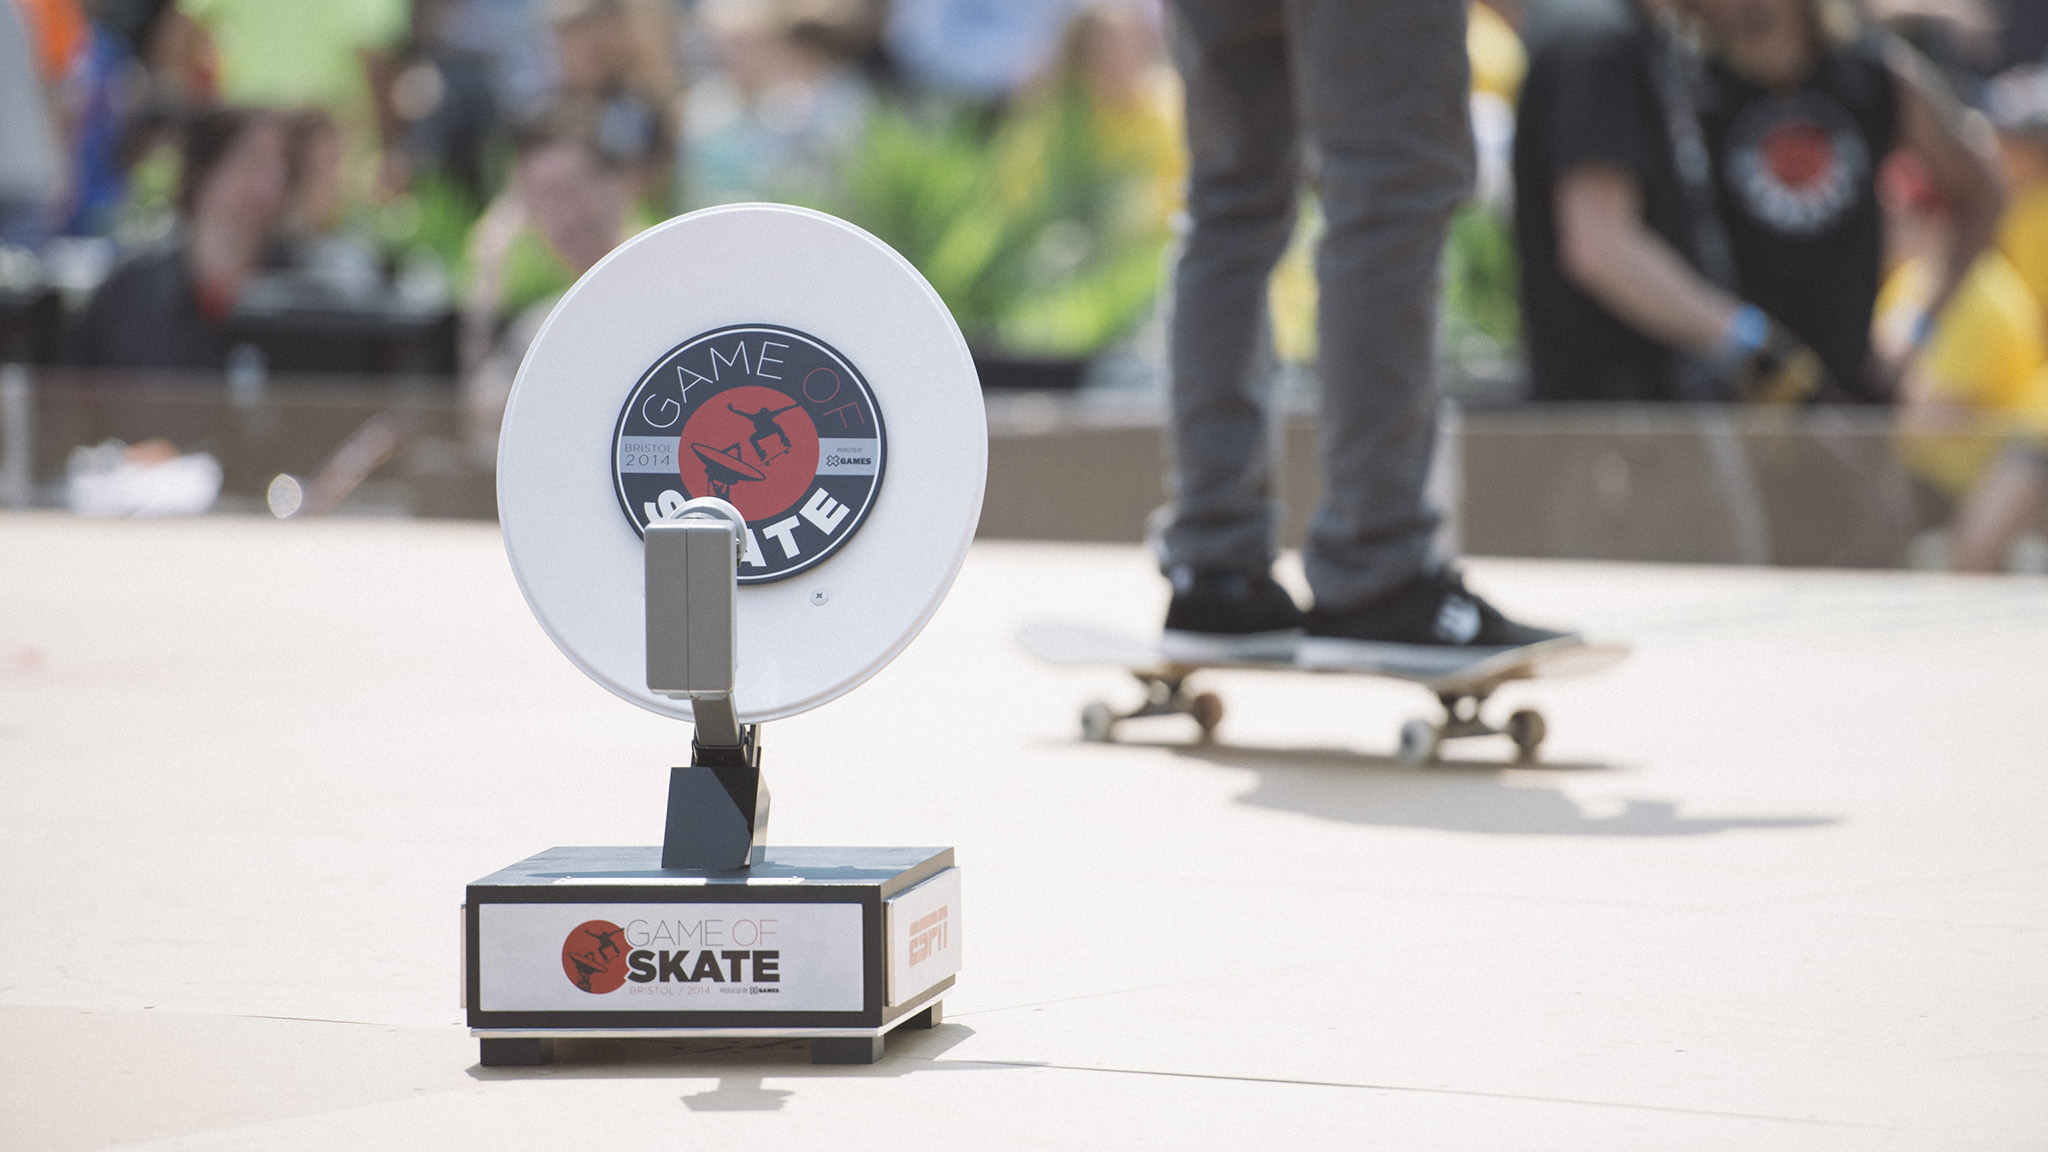 Game of Skate trophy